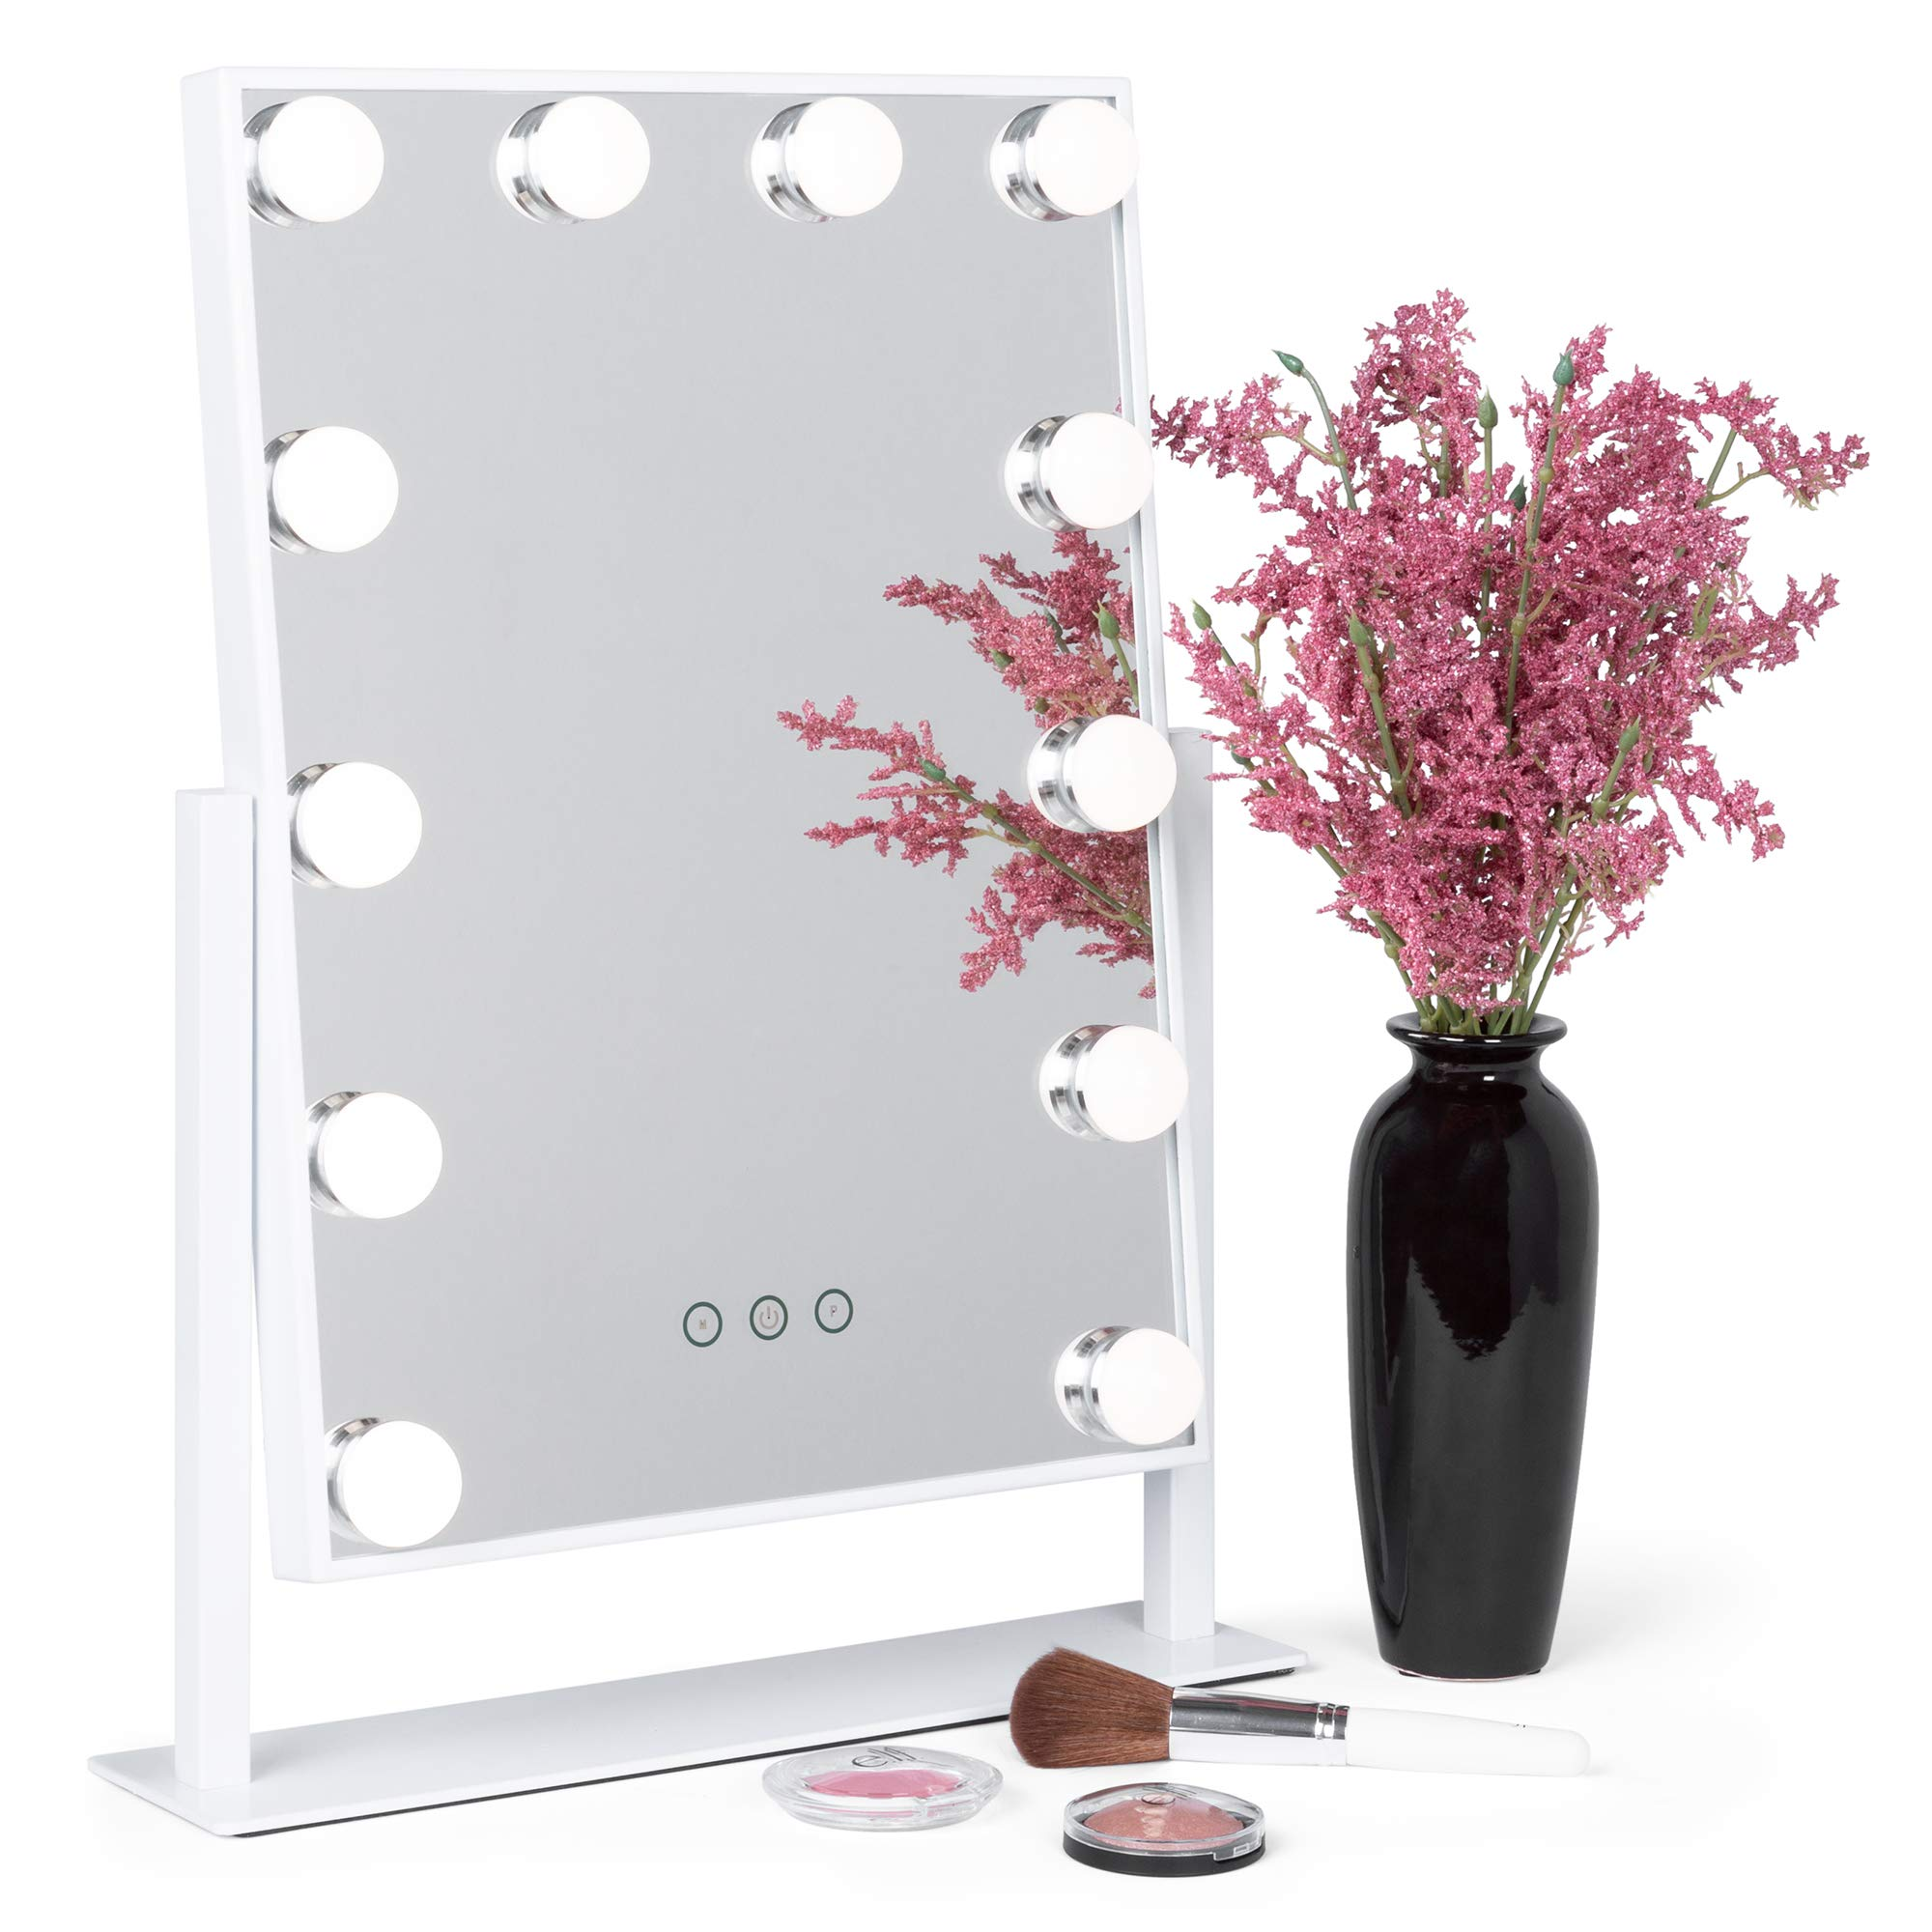 Best Choice Products Smart Touch Lighted Tabletop Hollywood Vanity Mirror Accent Décor with 12 LED Lights, Adjustable Color Temperature and Brightness, White